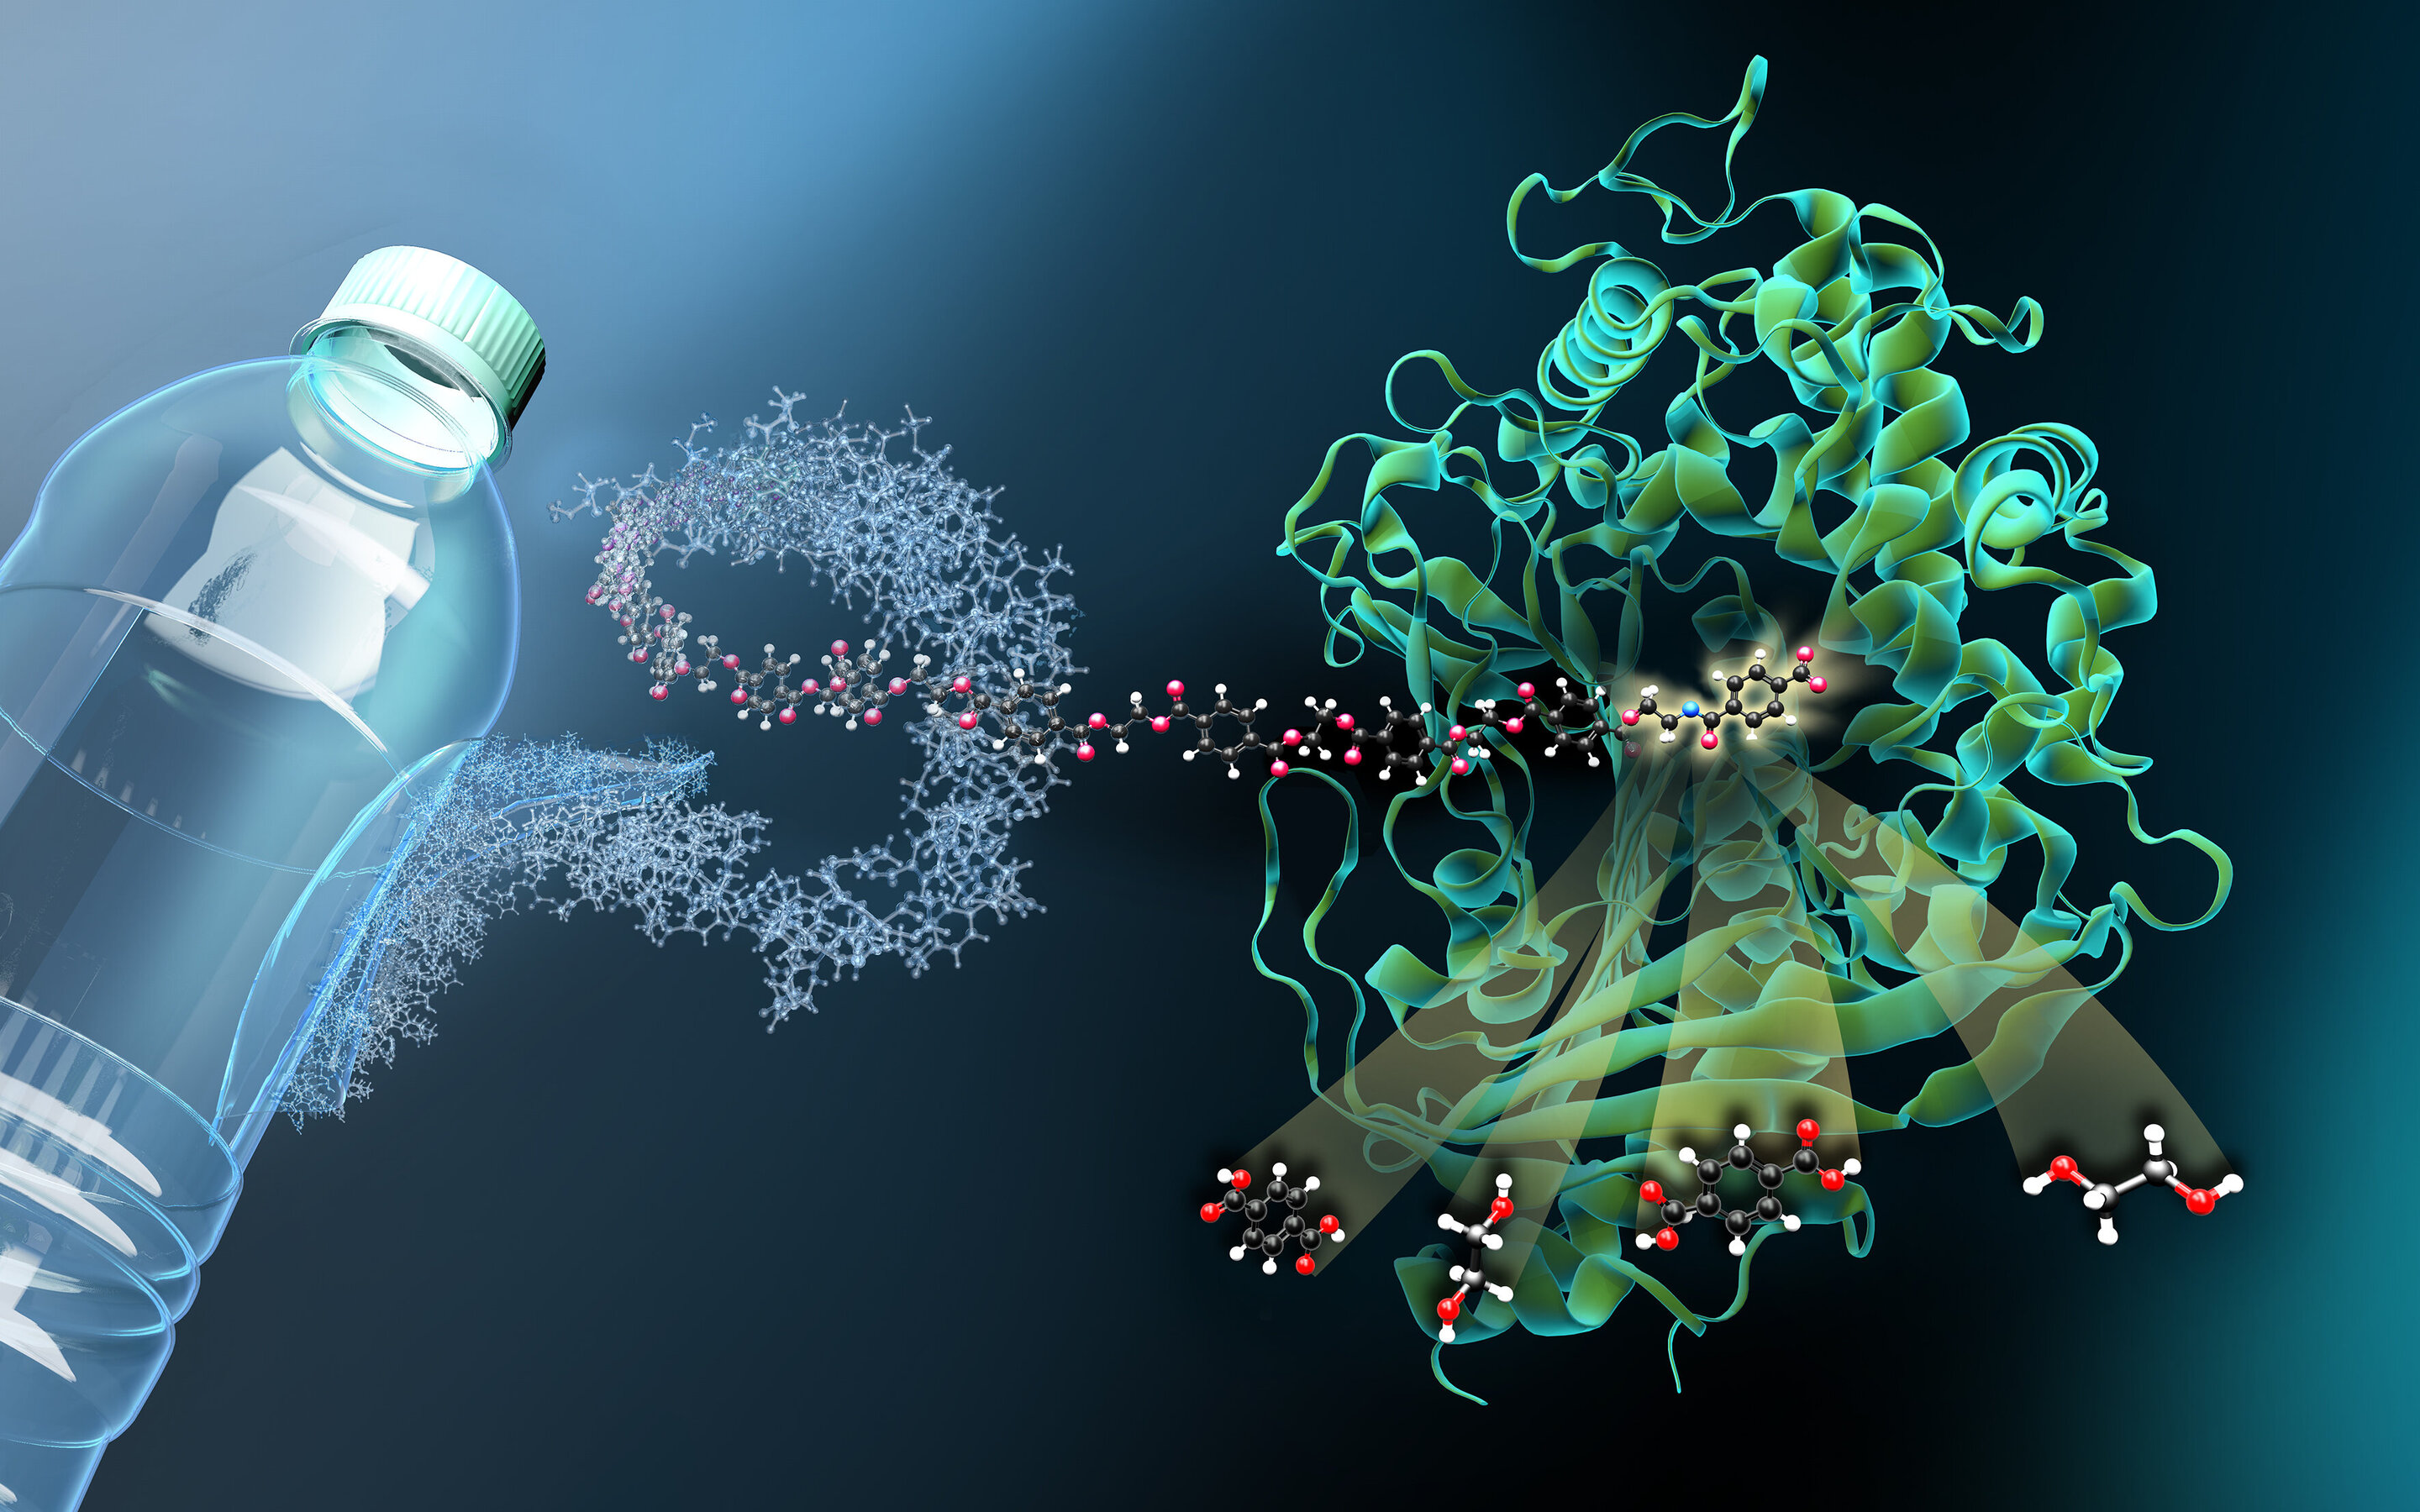 QnA VBage Researchers characterize molecular scissors for plastic waste